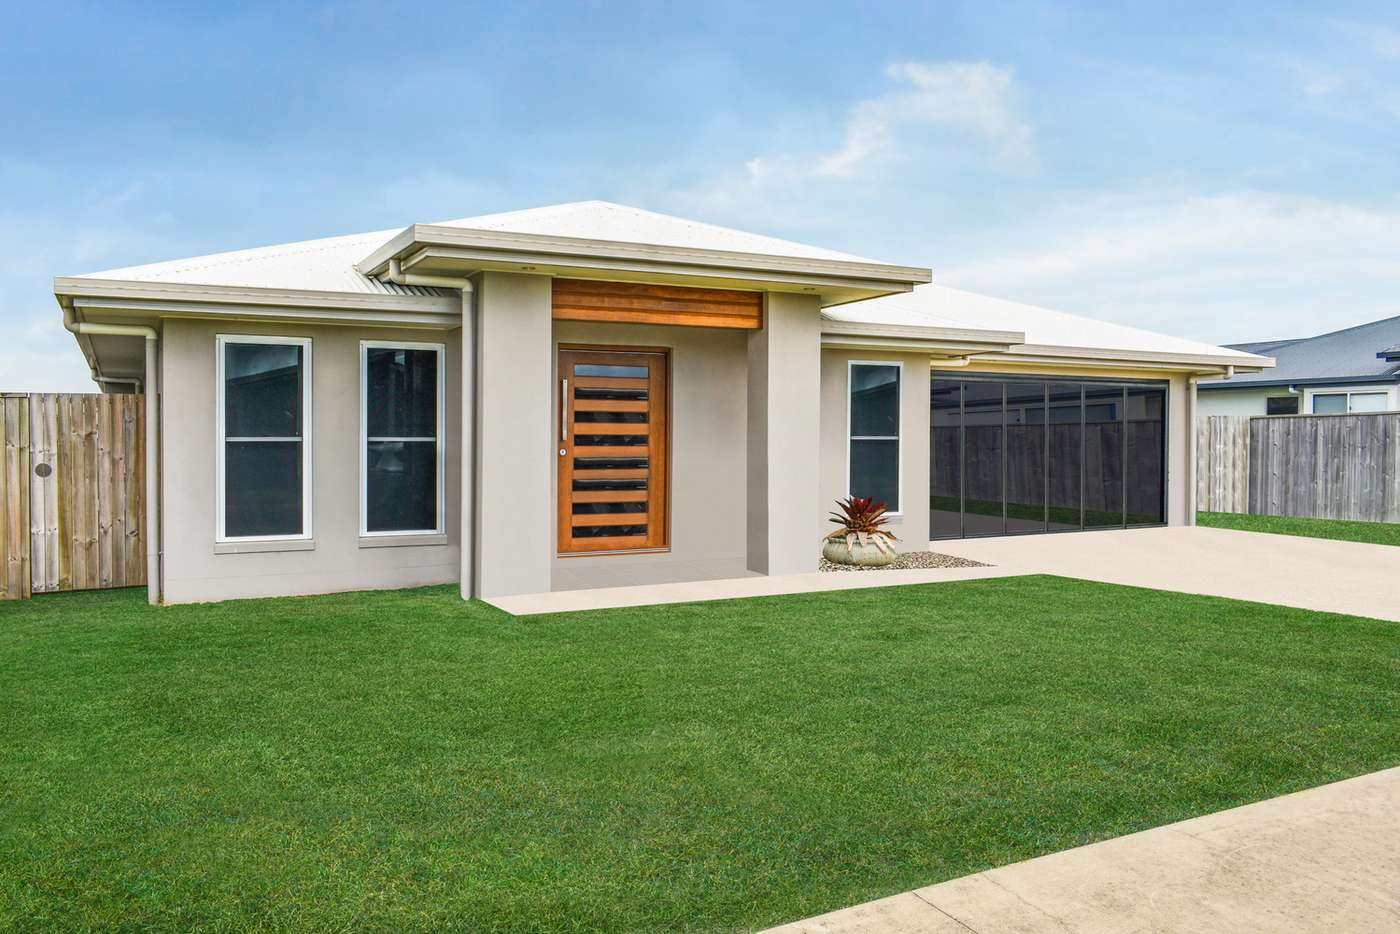 Main view of Homely house listing, 6 Eleanor Drive, Beaconsfield QLD 4740